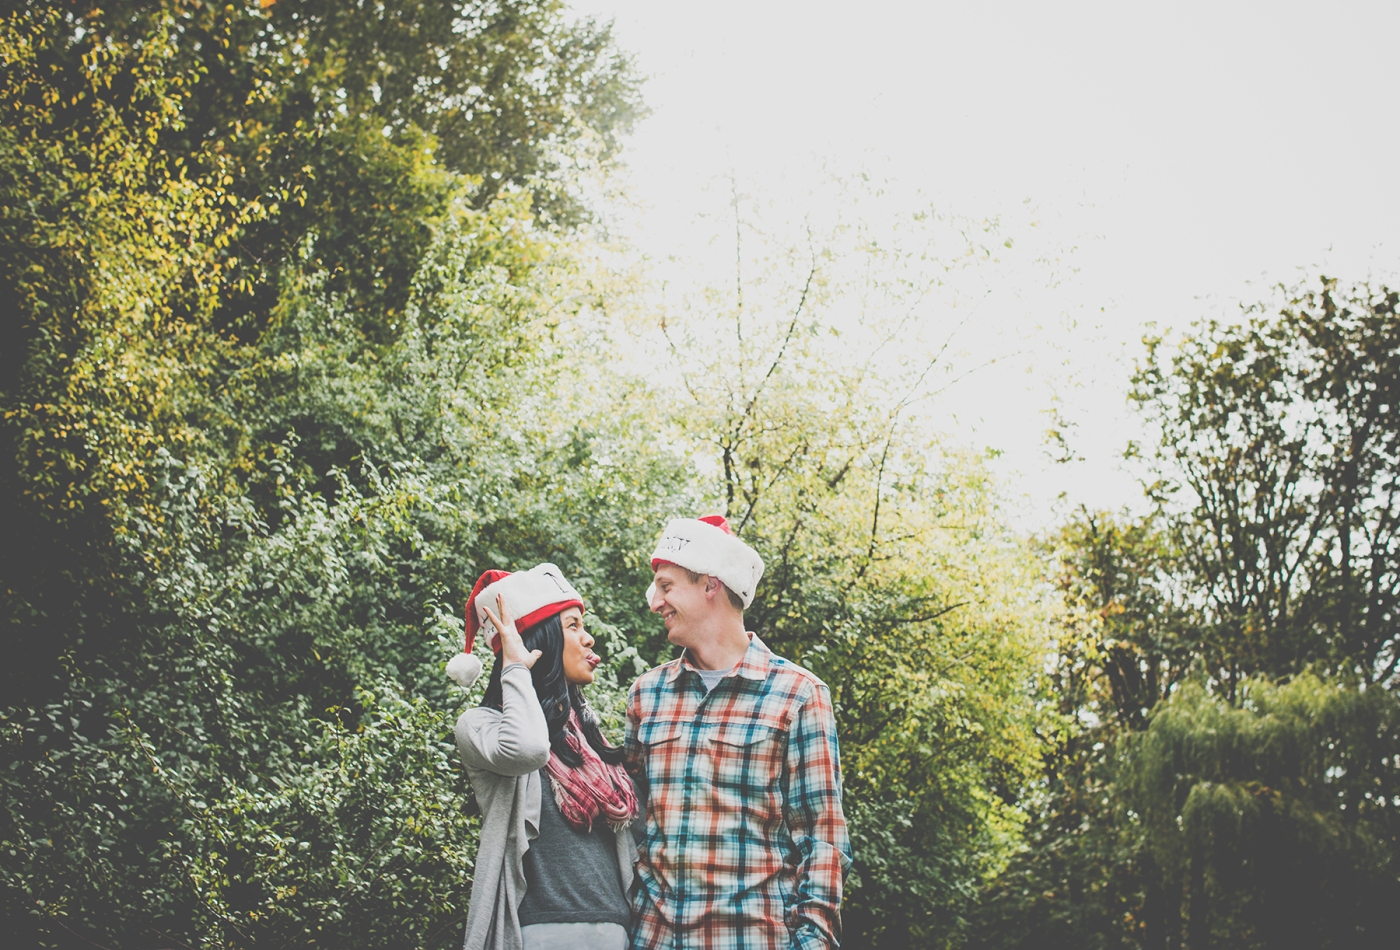 jane-speleers-photography-ju-bri-holiday-october-bellevue-botanical-garden-engagement-2016_dsc_5778